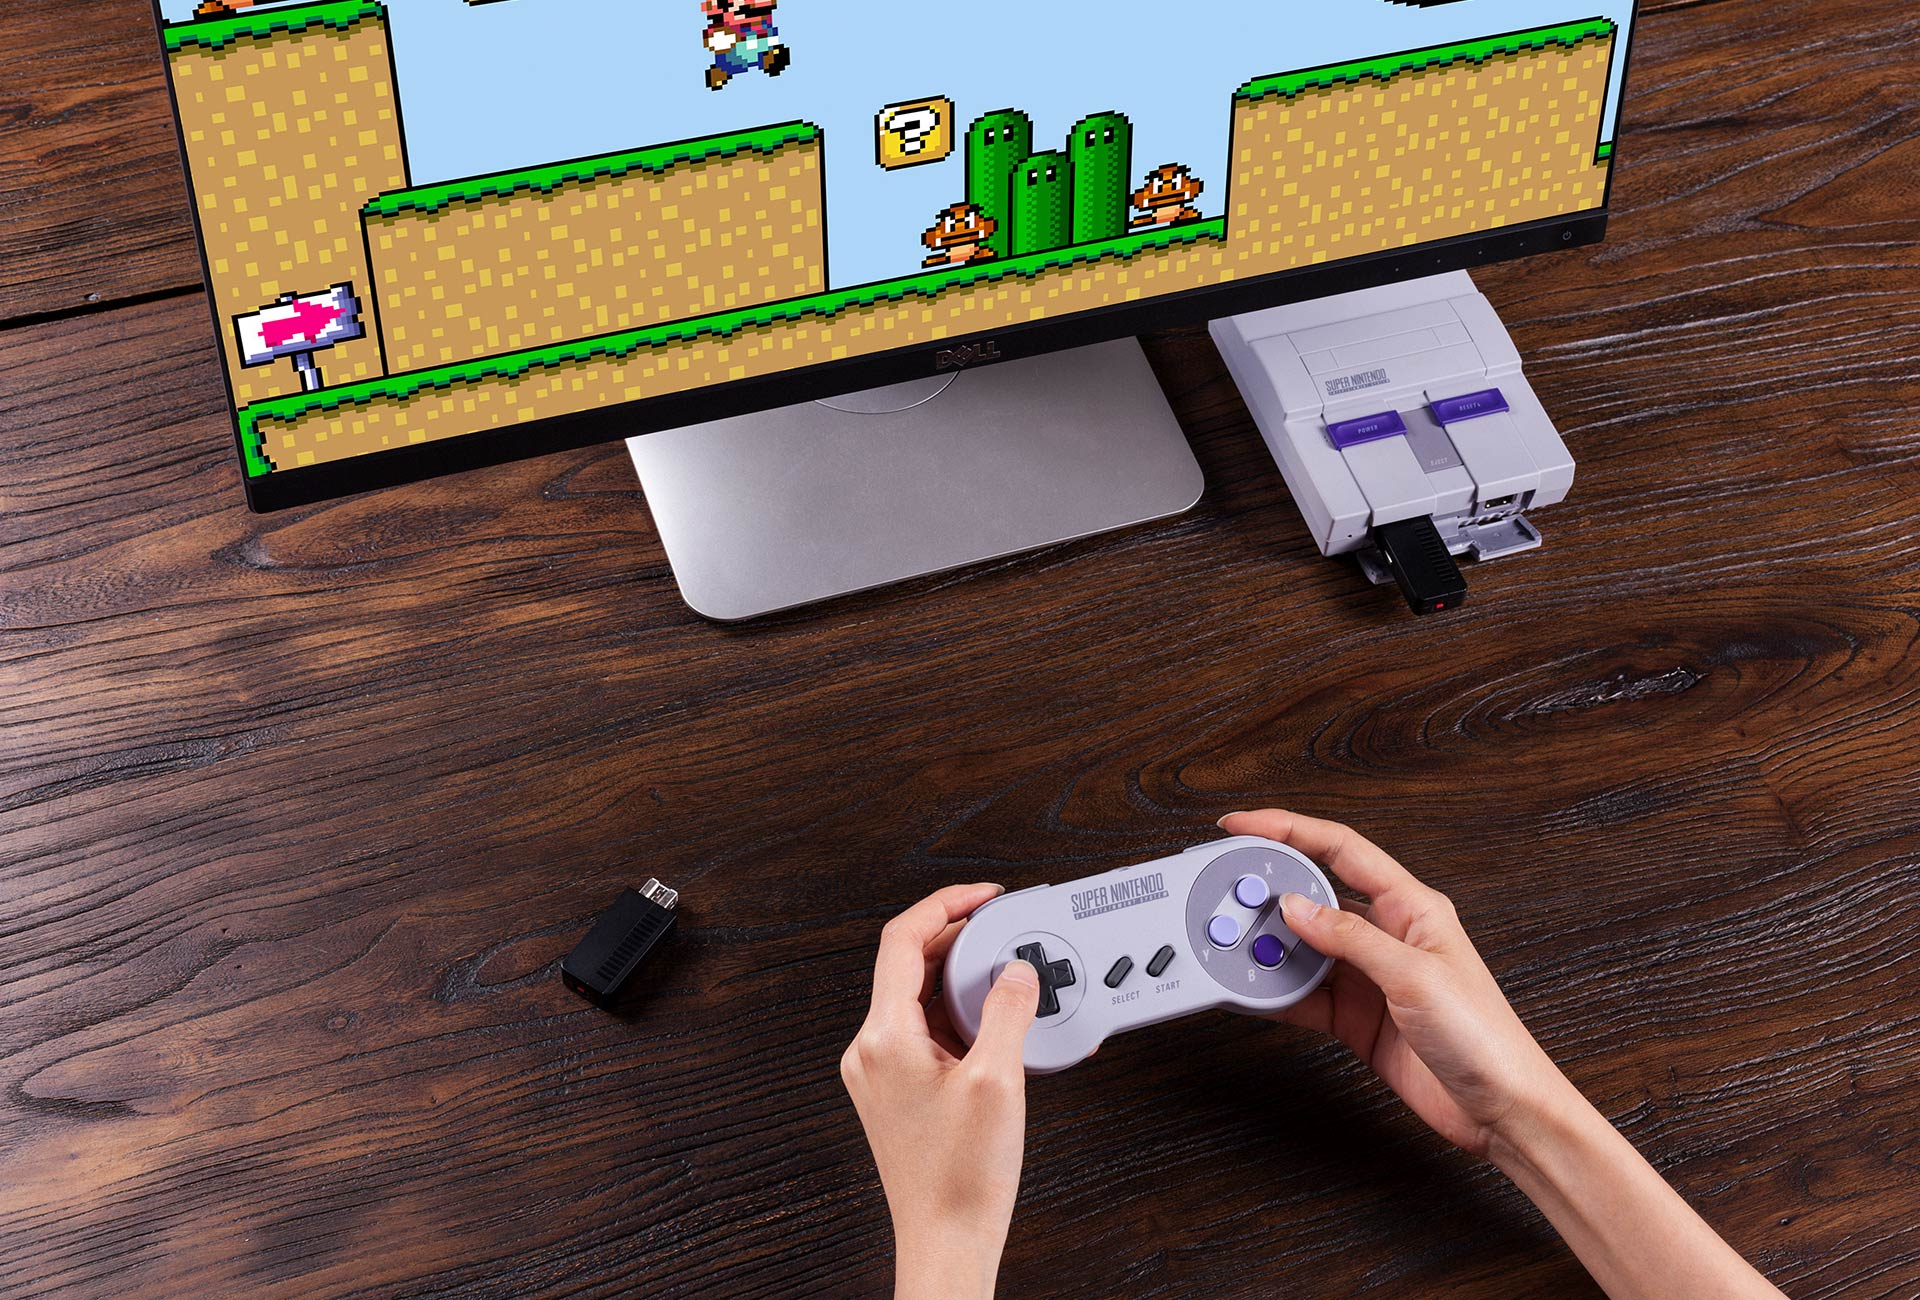 8BitDo Mod Kit for SNES/SFC Classic